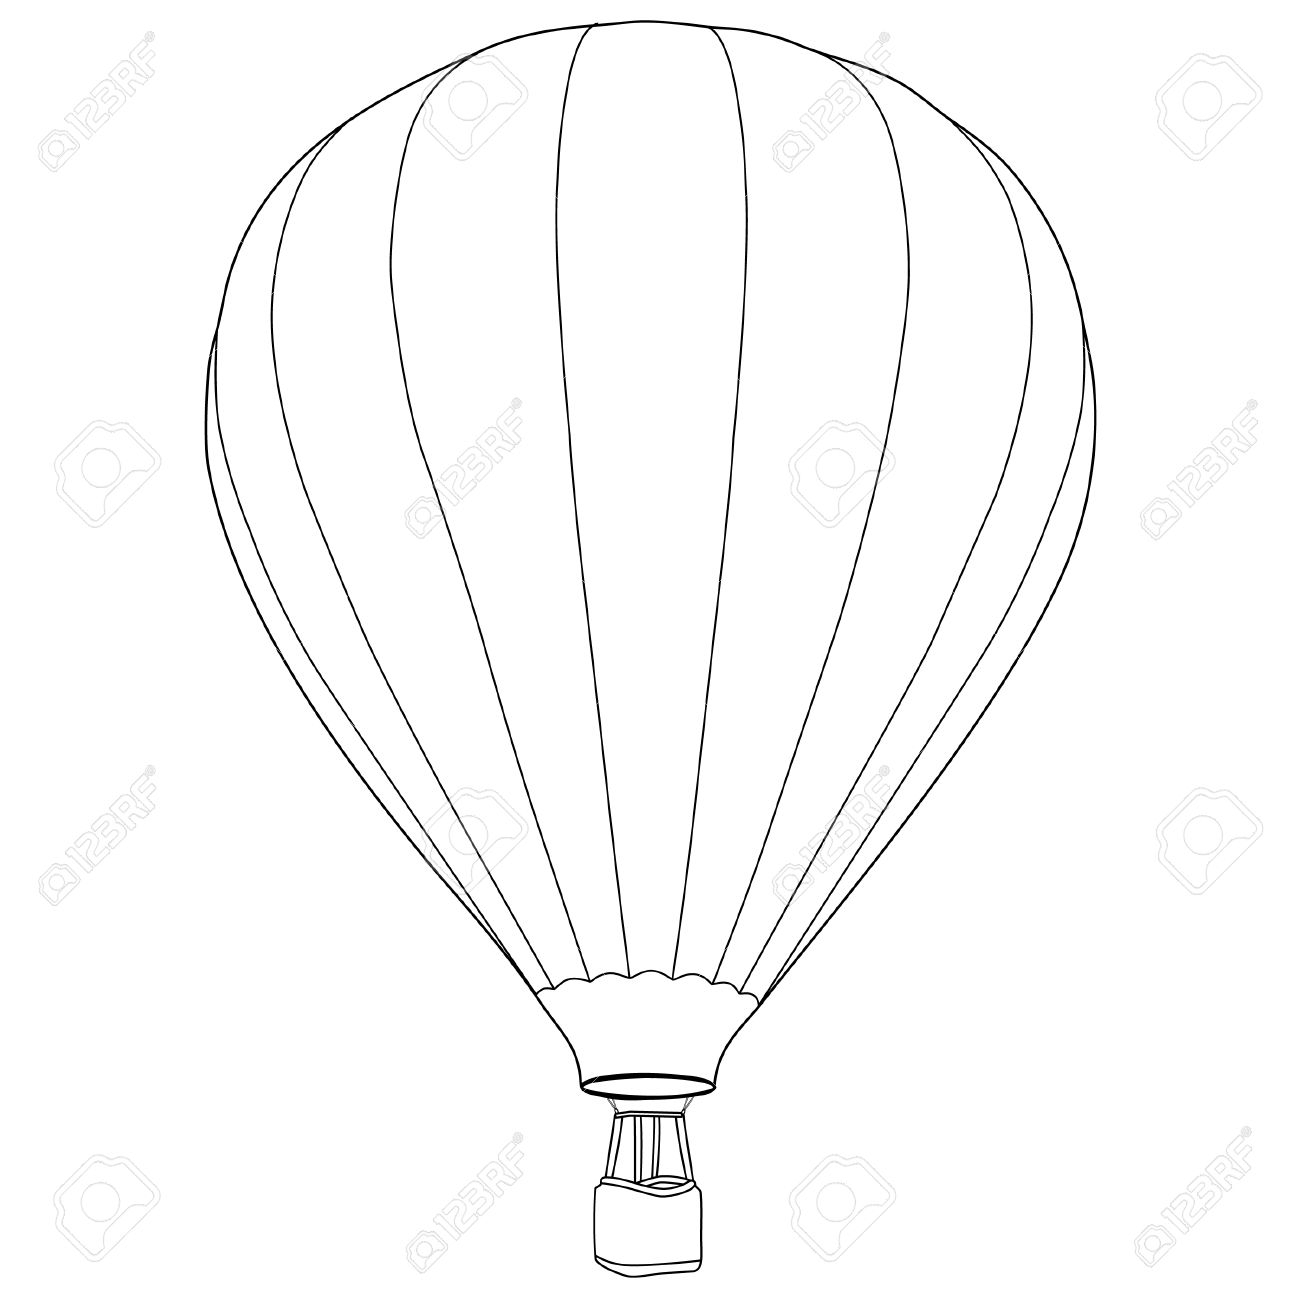 1300x1300 Drawing Of A Hot Air Balloon How To Draw A Hot Air Balloon